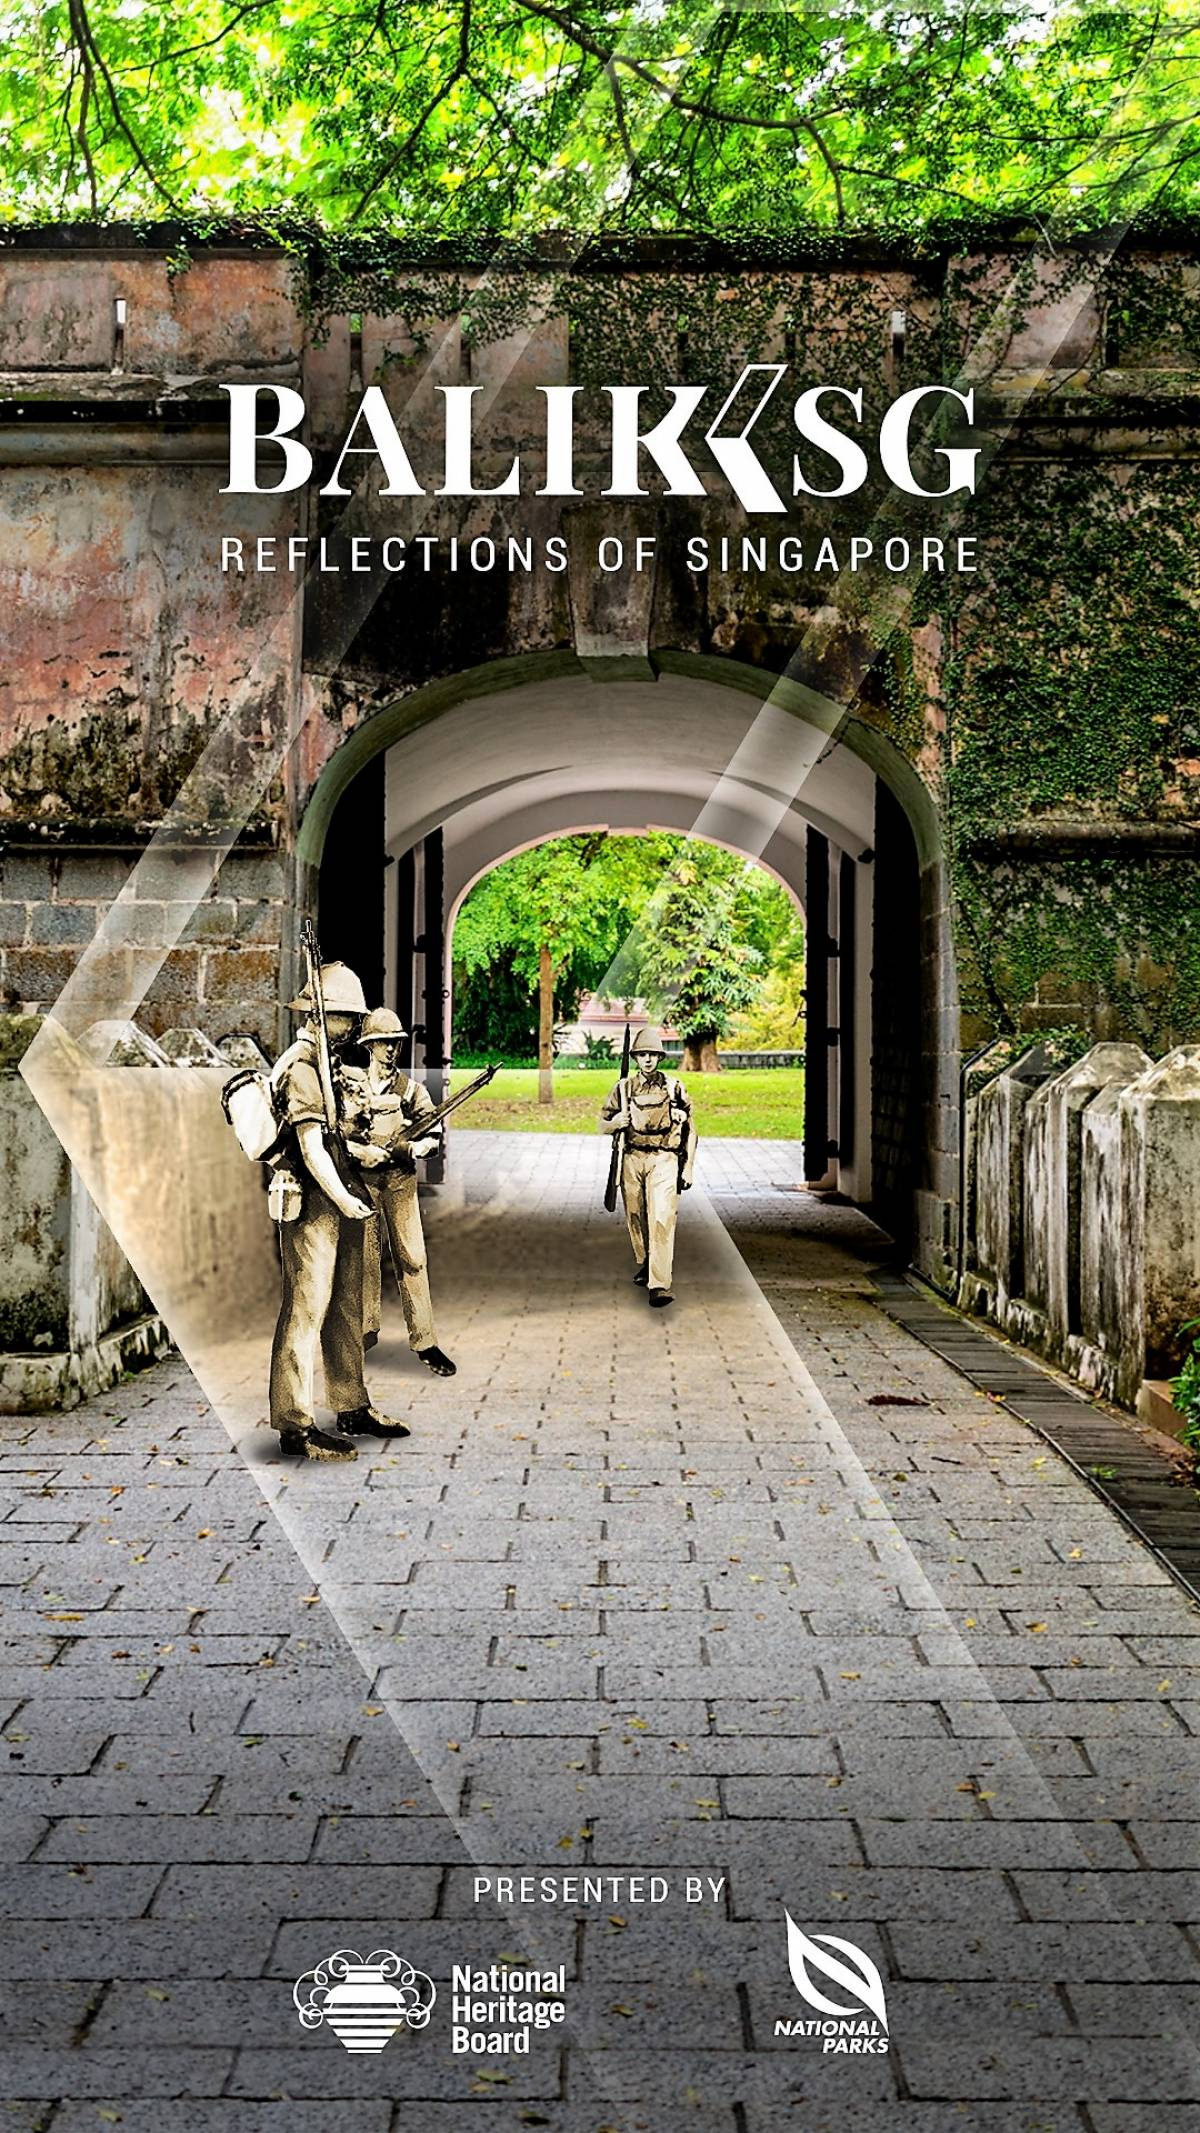 "NEW AUGMENTED REALITY TRAIL ""BALIKSG"" BRINGS SINGAPORE'S HISTORY TO LIFE"